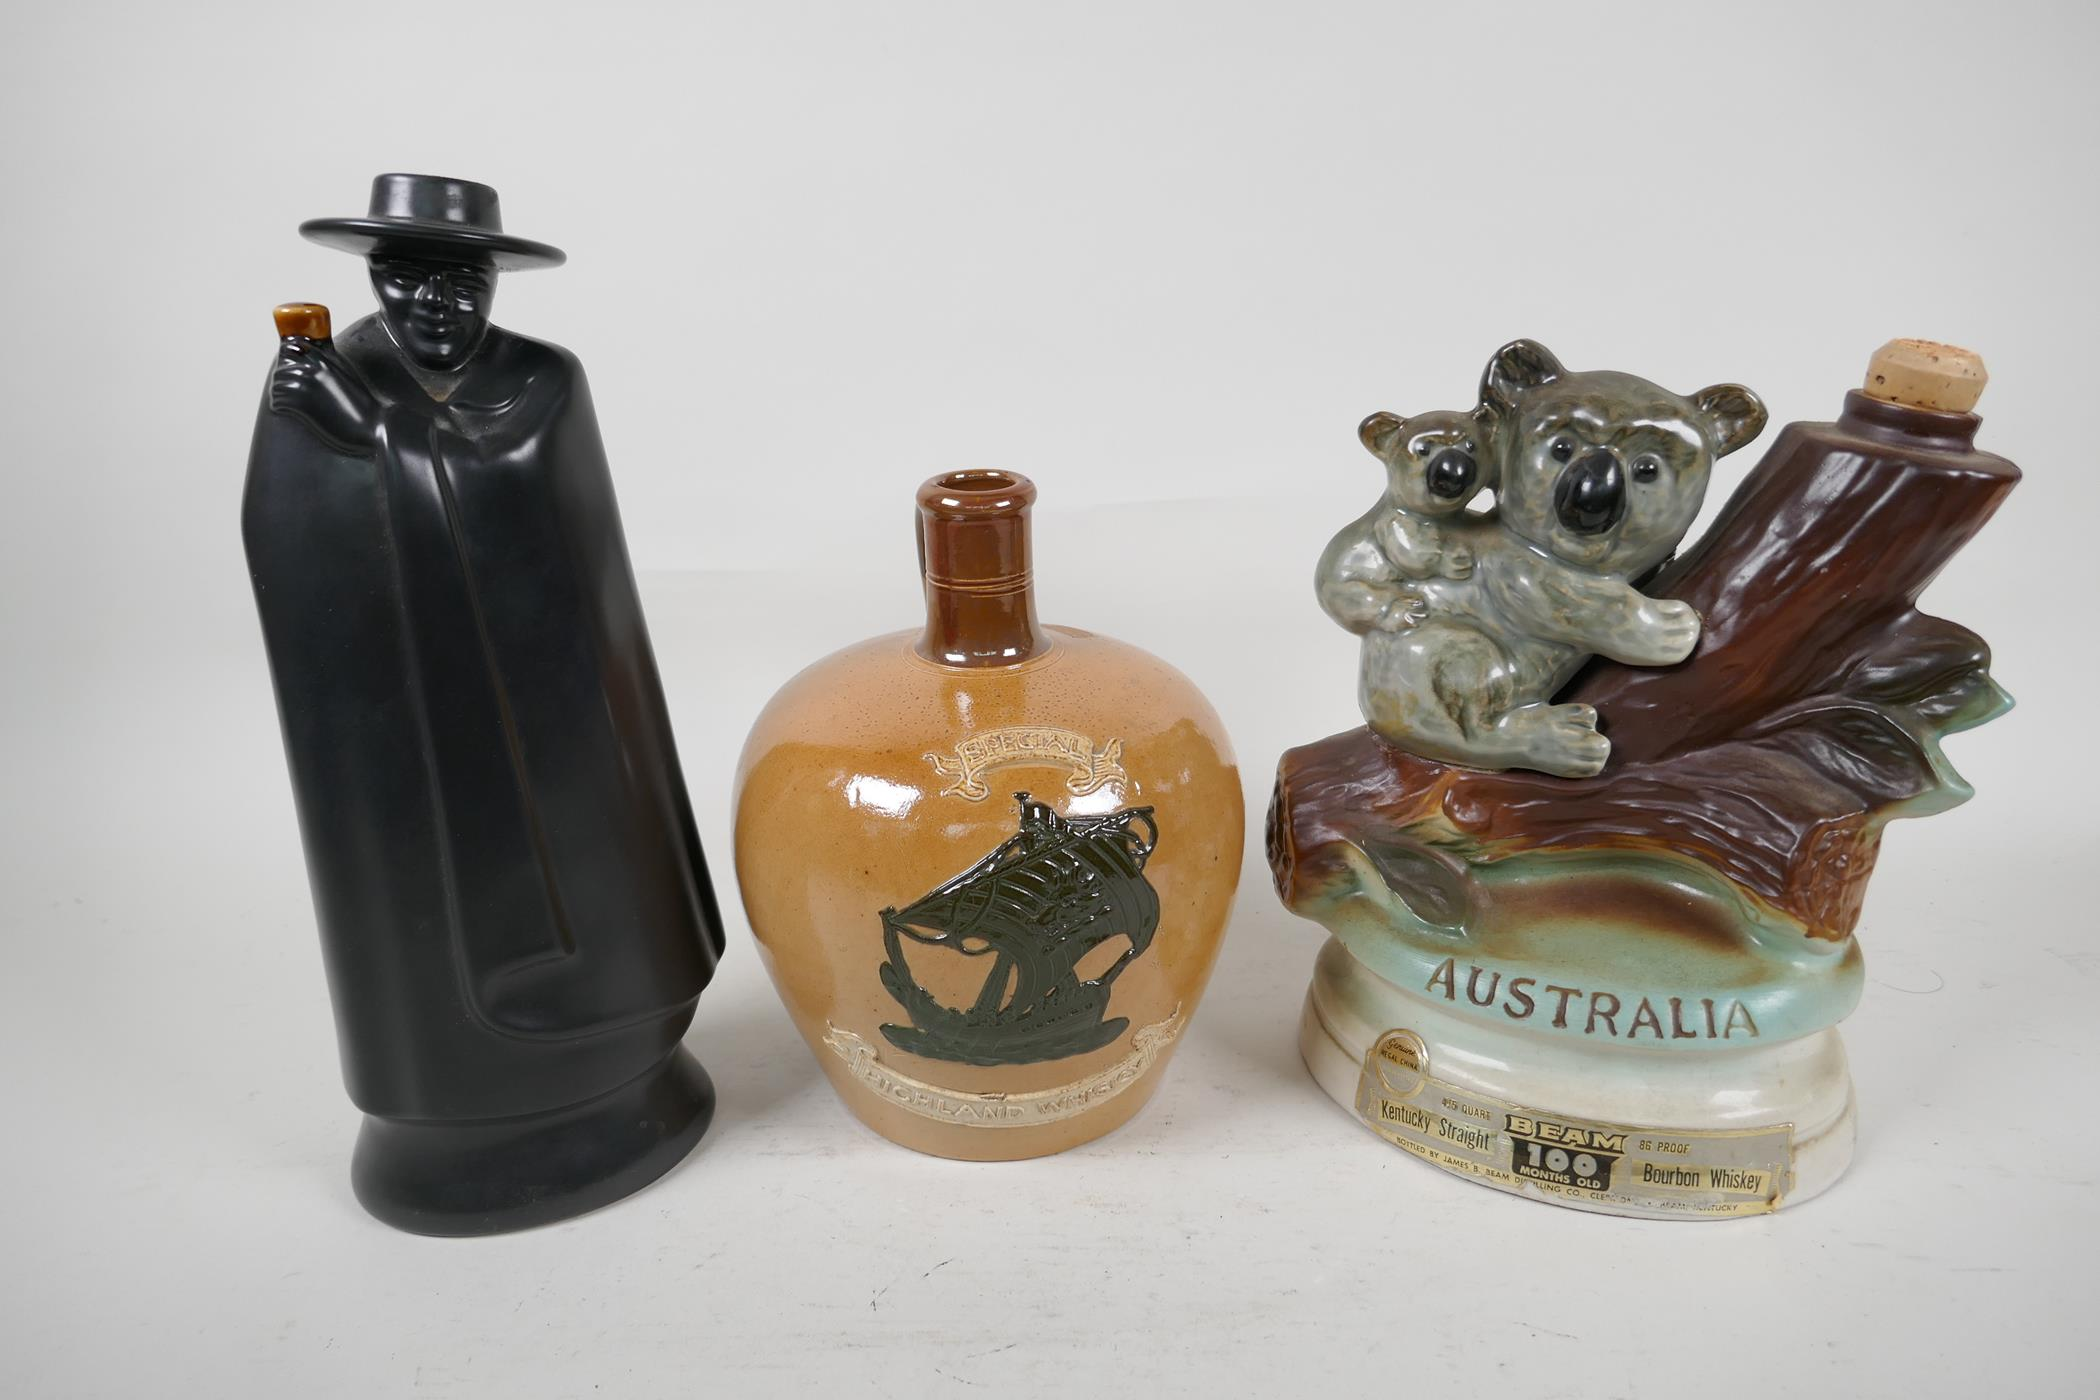 A Stoneware Highland Whisky flask, a Wedgwood 'Don' for Sandeman Sherry decanter and an Australian